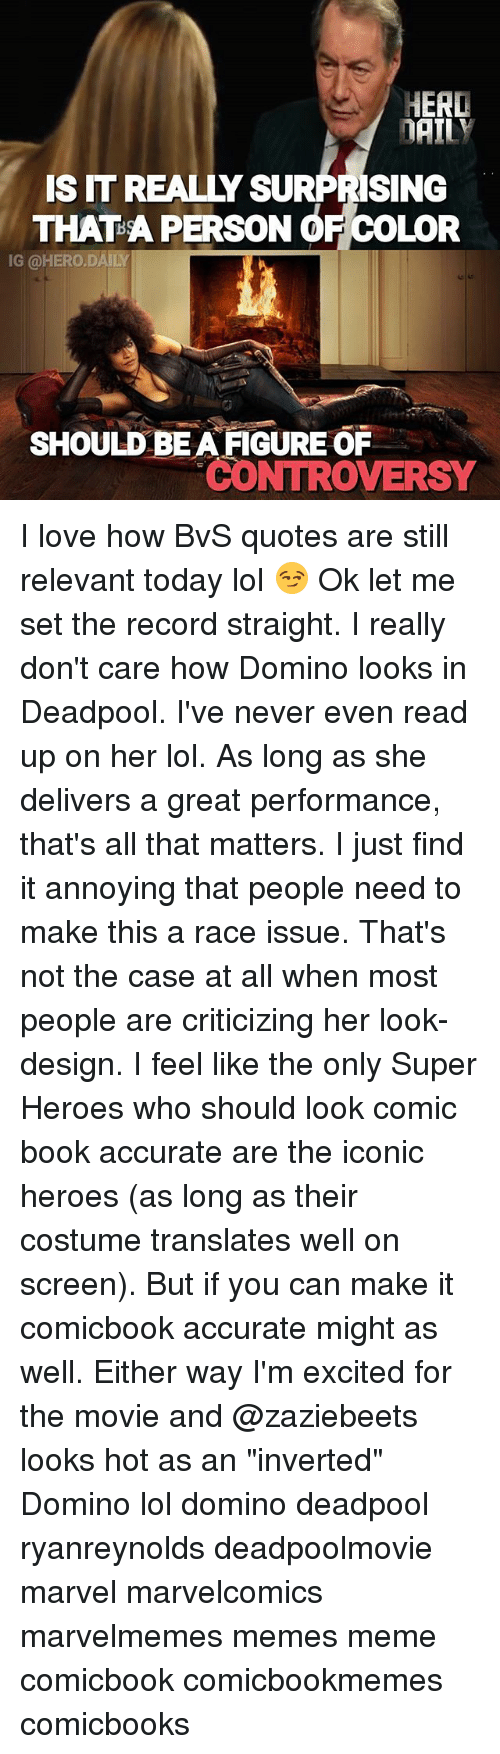 "Lol, Love, and Meme: HERD  DAILY  SIT REALLY SURPRISING  THAT A PERSON OF COLOR  IG @HERO.DAILY  SHOULD BEA FIGURE OR  CONTROVERSY I love how BvS quotes are still relevant today lol 😏 Ok let me set the record straight. I really don't care how Domino looks in Deadpool. I've never even read up on her lol. As long as she delivers a great performance, that's all that matters. I just find it annoying that people need to make this a race issue. That's not the case at all when most people are criticizing her look-design. I feel like the only Super Heroes who should look comic book accurate are the iconic heroes (as long as their costume translates well on screen). But if you can make it comicbook accurate might as well. Either way I'm excited for the movie and @zaziebeets looks hot as an ""inverted"" Domino lol domino deadpool ryanreynolds deadpoolmovie marvel marvelcomics marvelmemes memes meme comicbook comicbookmemes comicbooks"